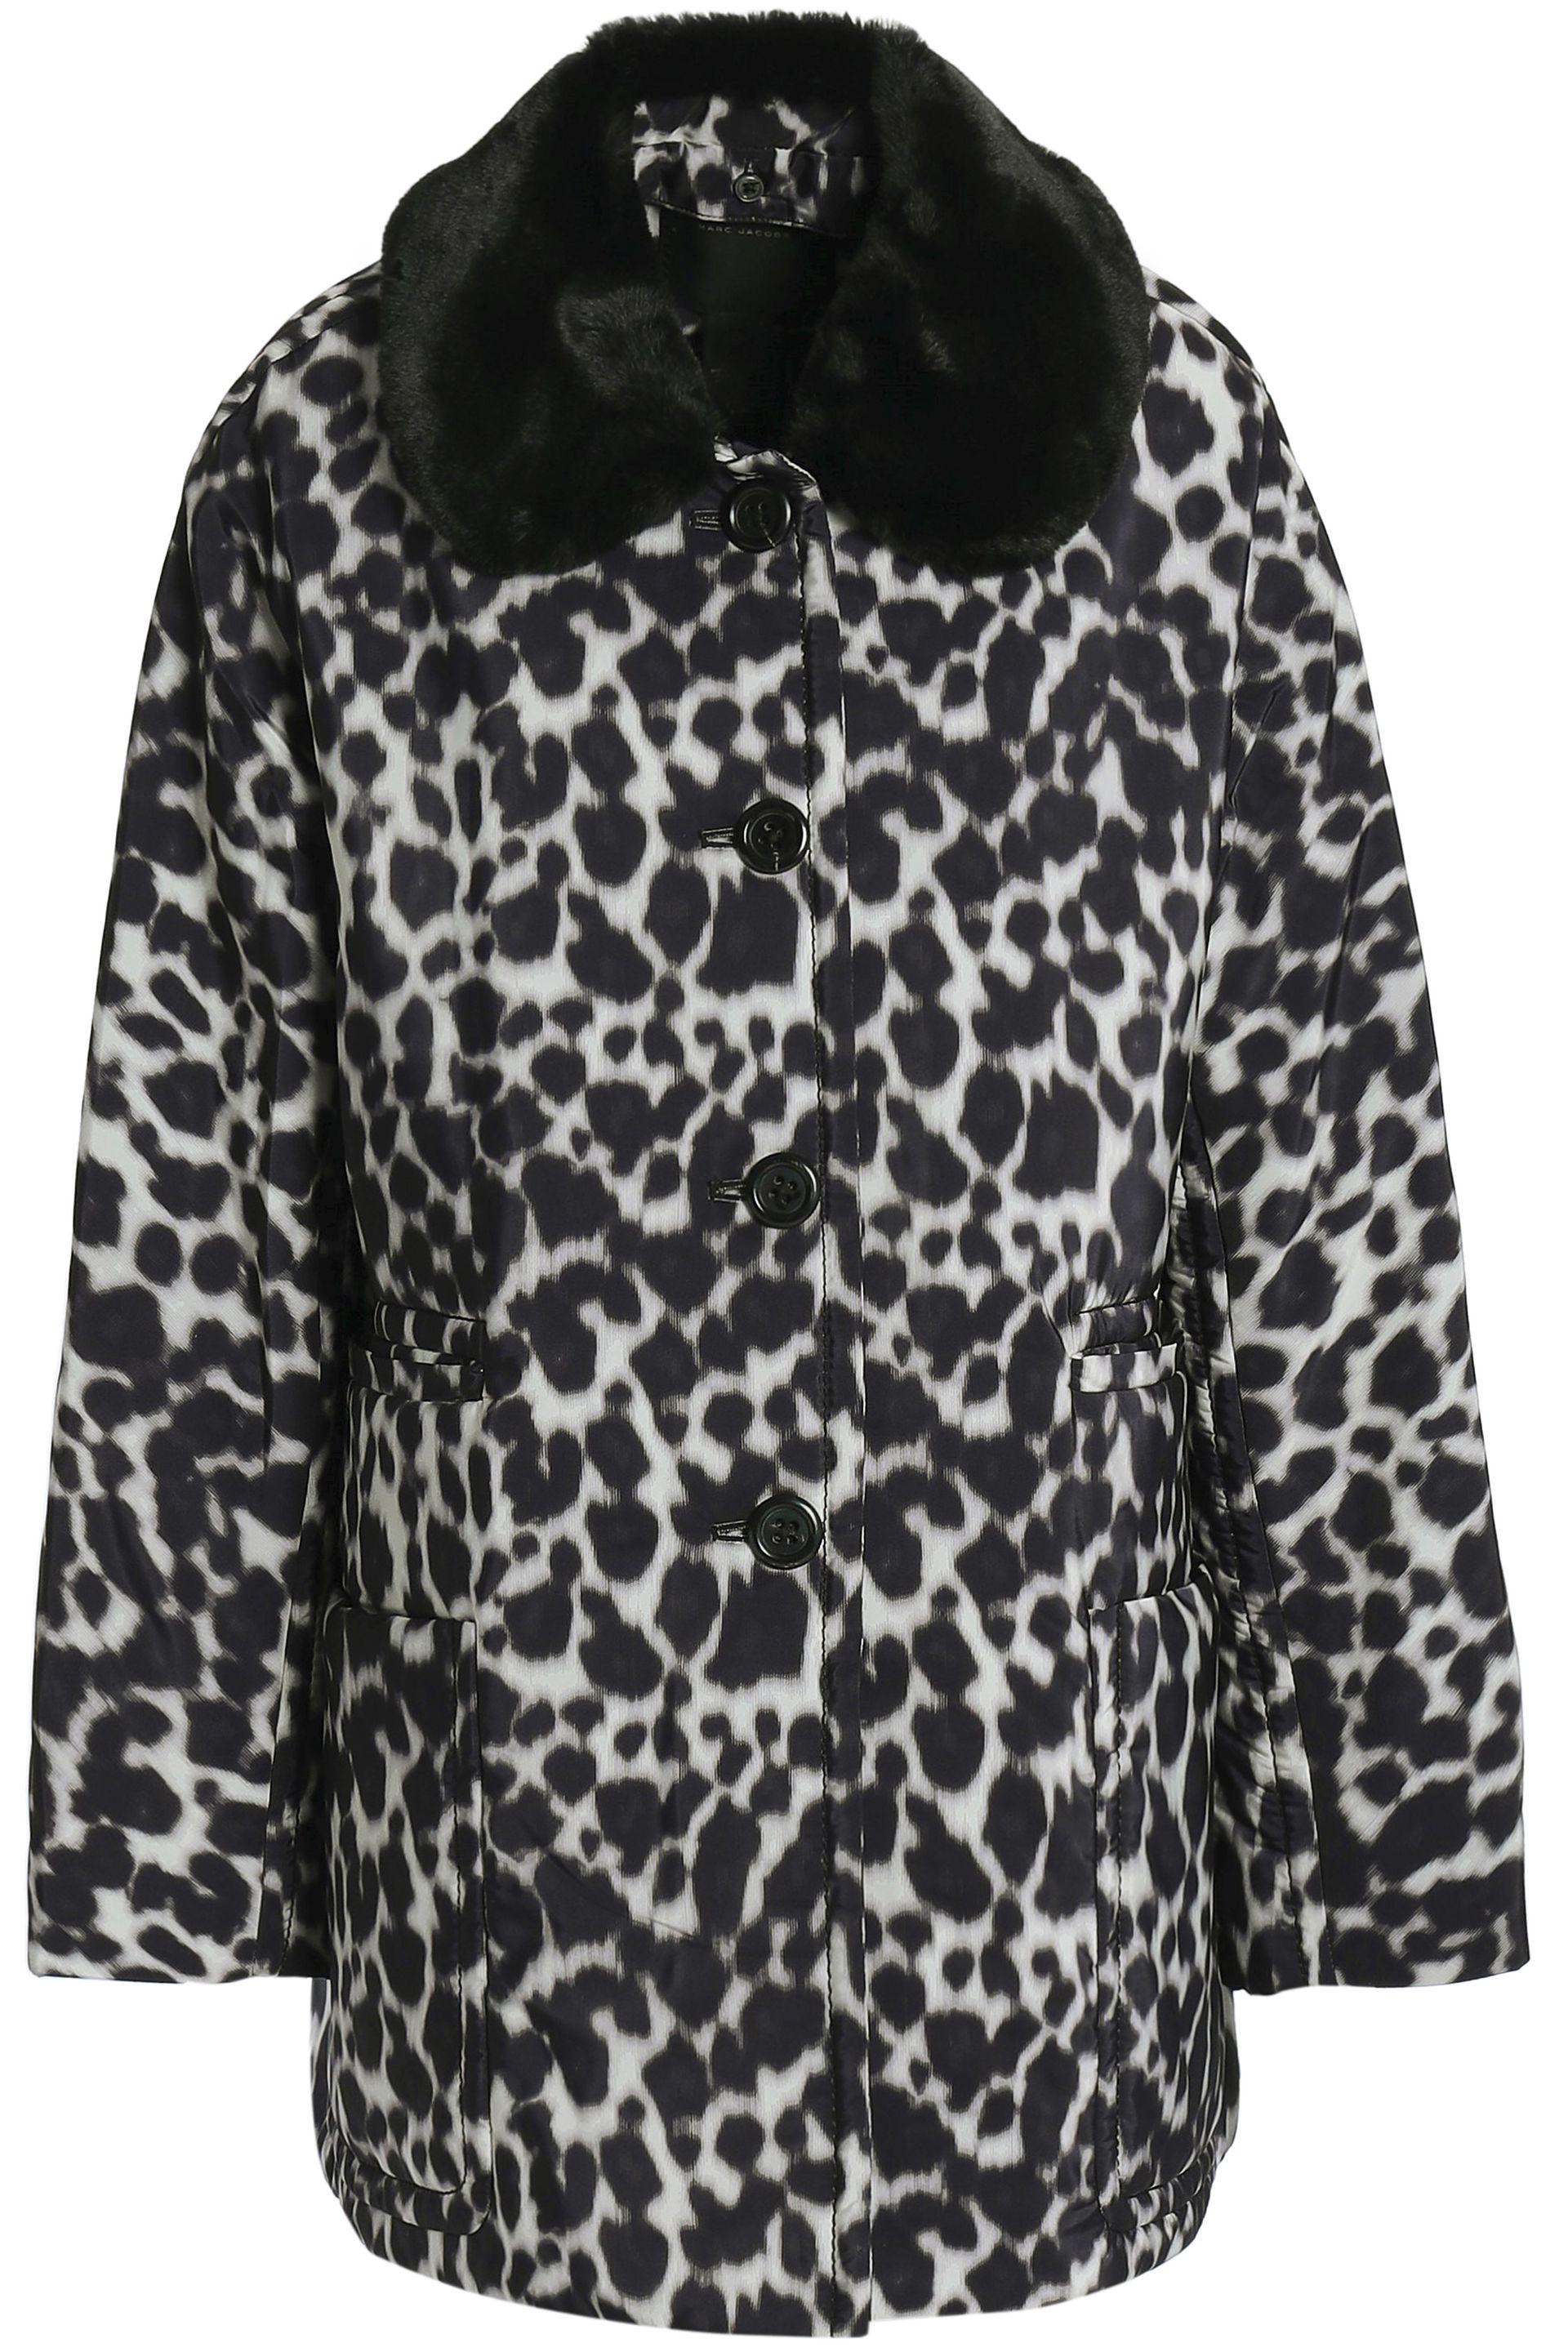 a895b9135a73 Marc Jacobs Woman Leopard-print Faux Fur-trimmed Shell Down Jacket ...